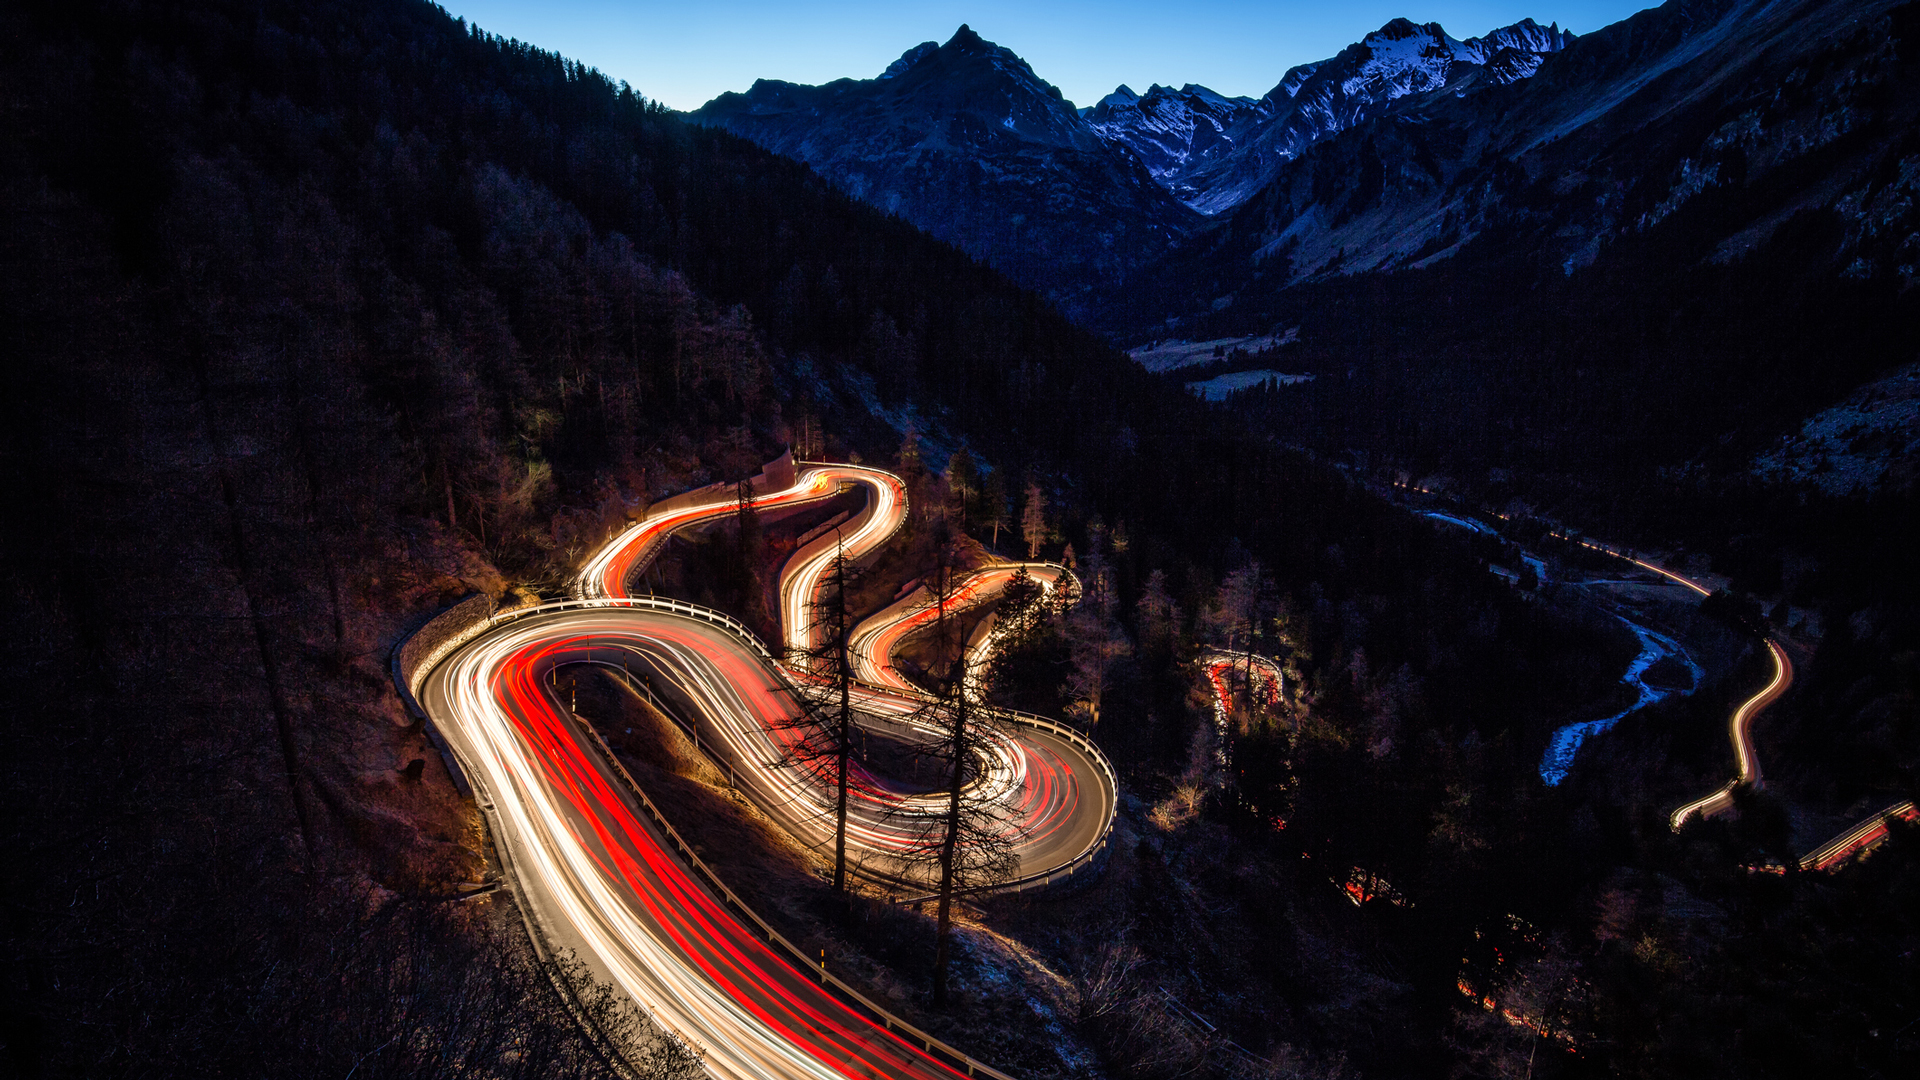 Mountain-Pass-Road-Curves-at-Night_Sandro-Bisaro_Getty